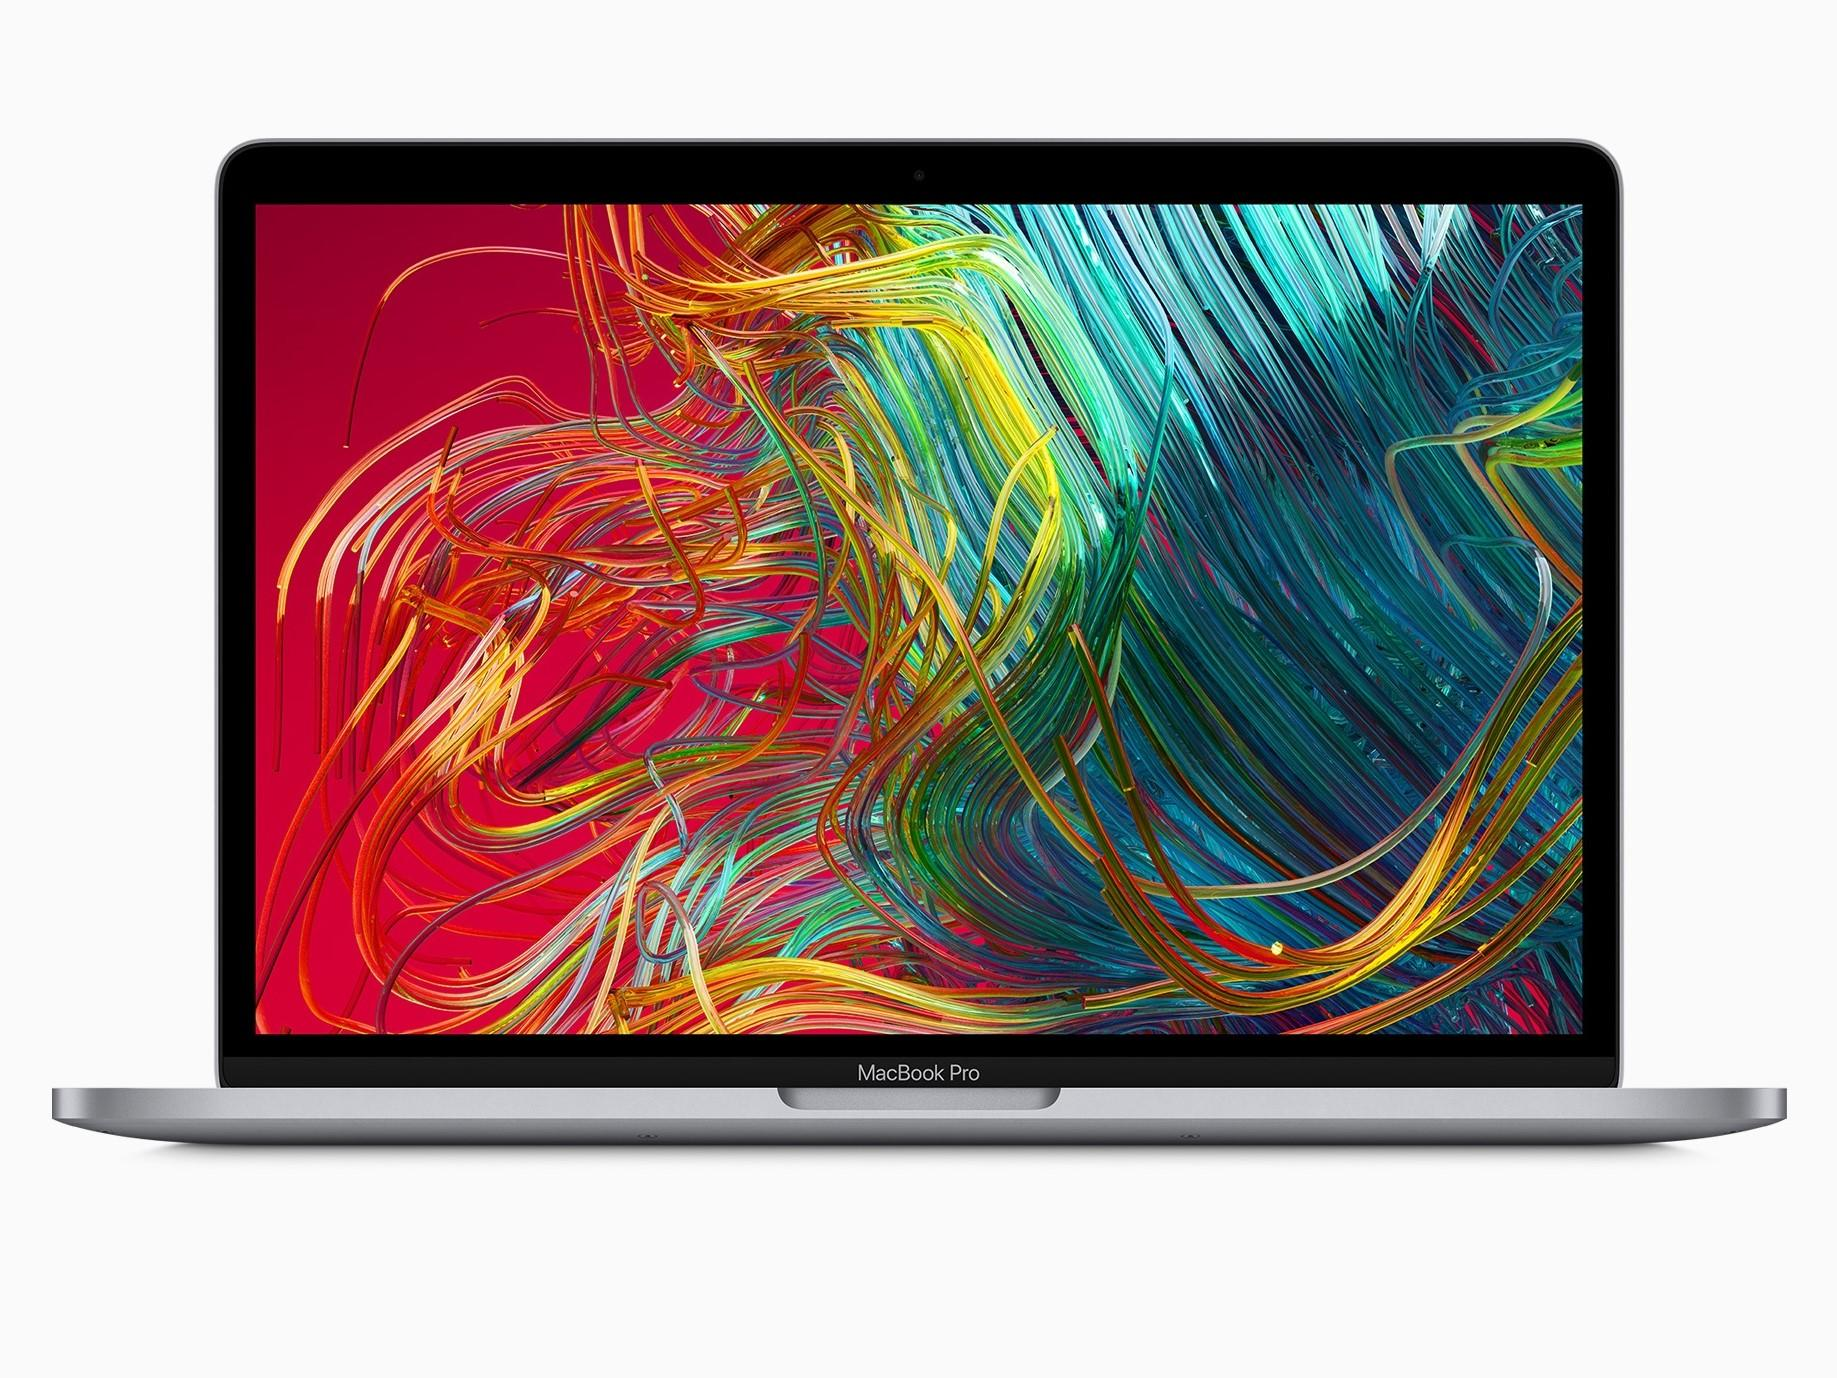 MacBook Pro 13in 2020 review: Apple has 'created something extraordinary'